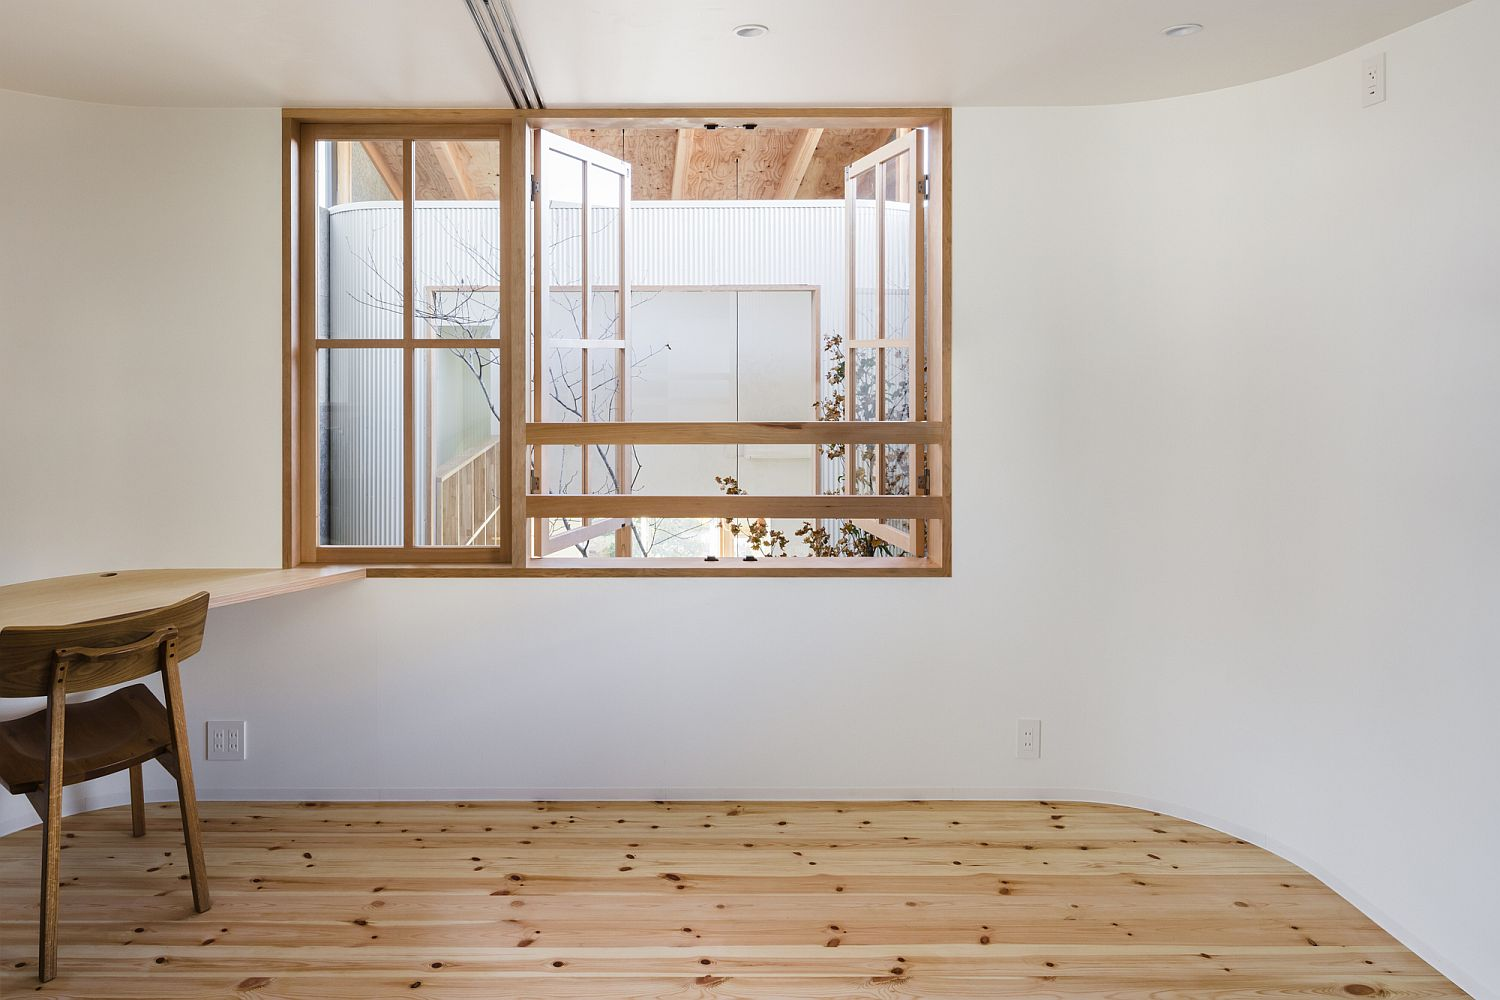 Minimal and modern interior of the Japanese home